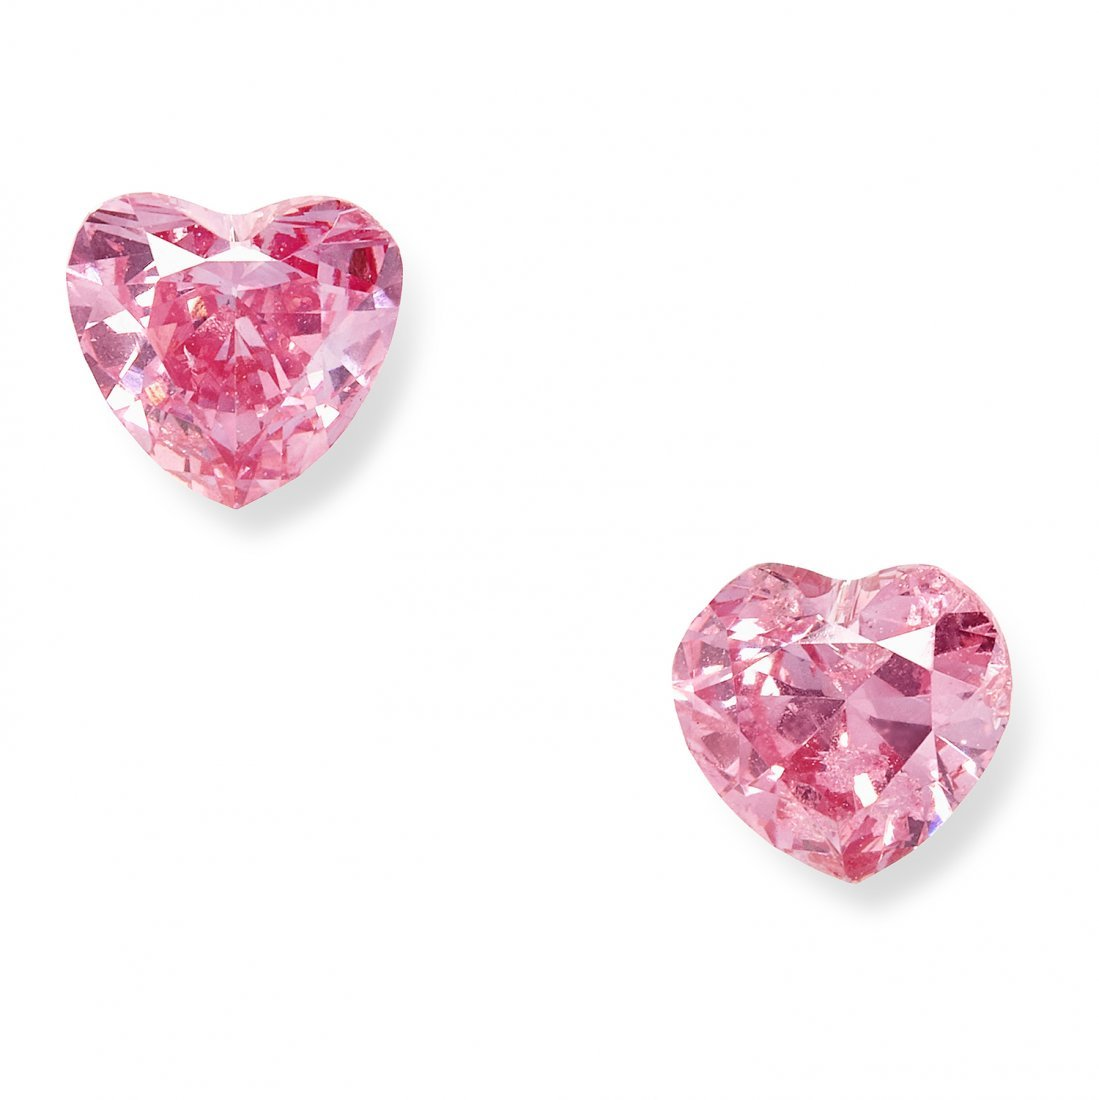 A PAIR OF 0.54 CARAT FANCY VIVID PURPLISH PINK DIAMOND